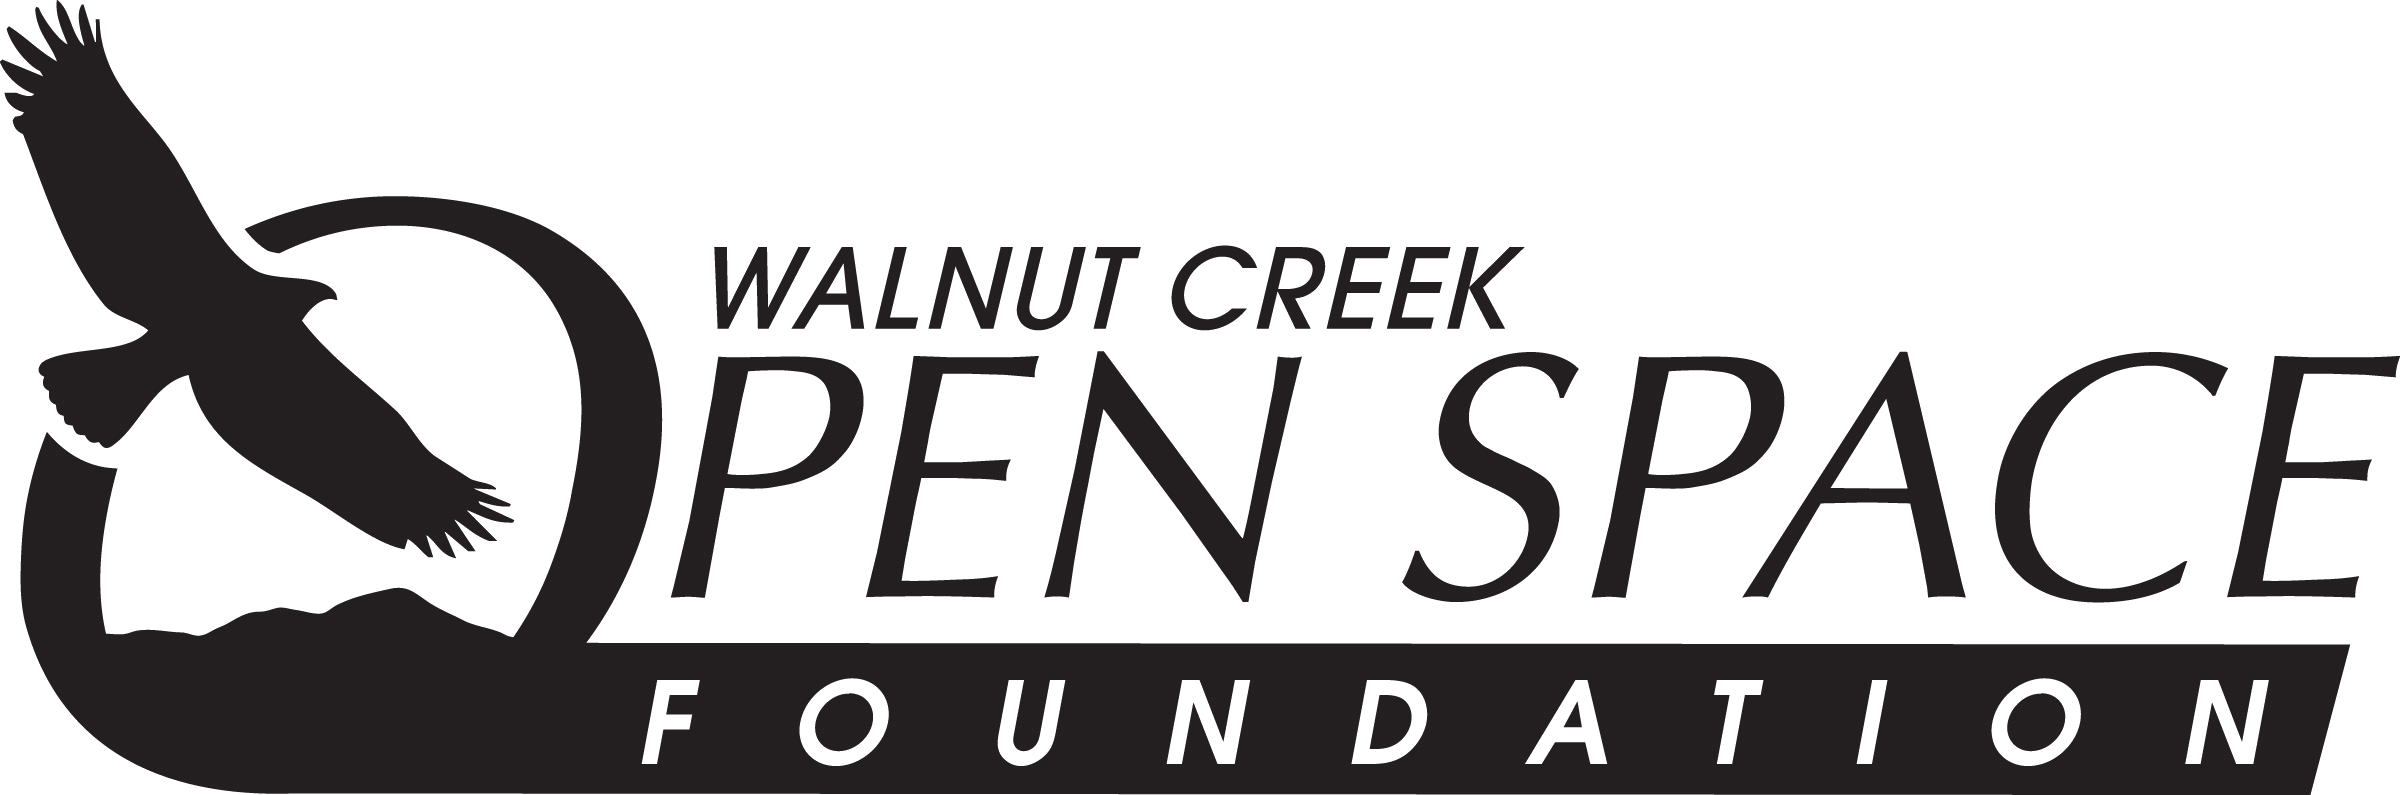 Walnut Creek Open Space Foundation Home